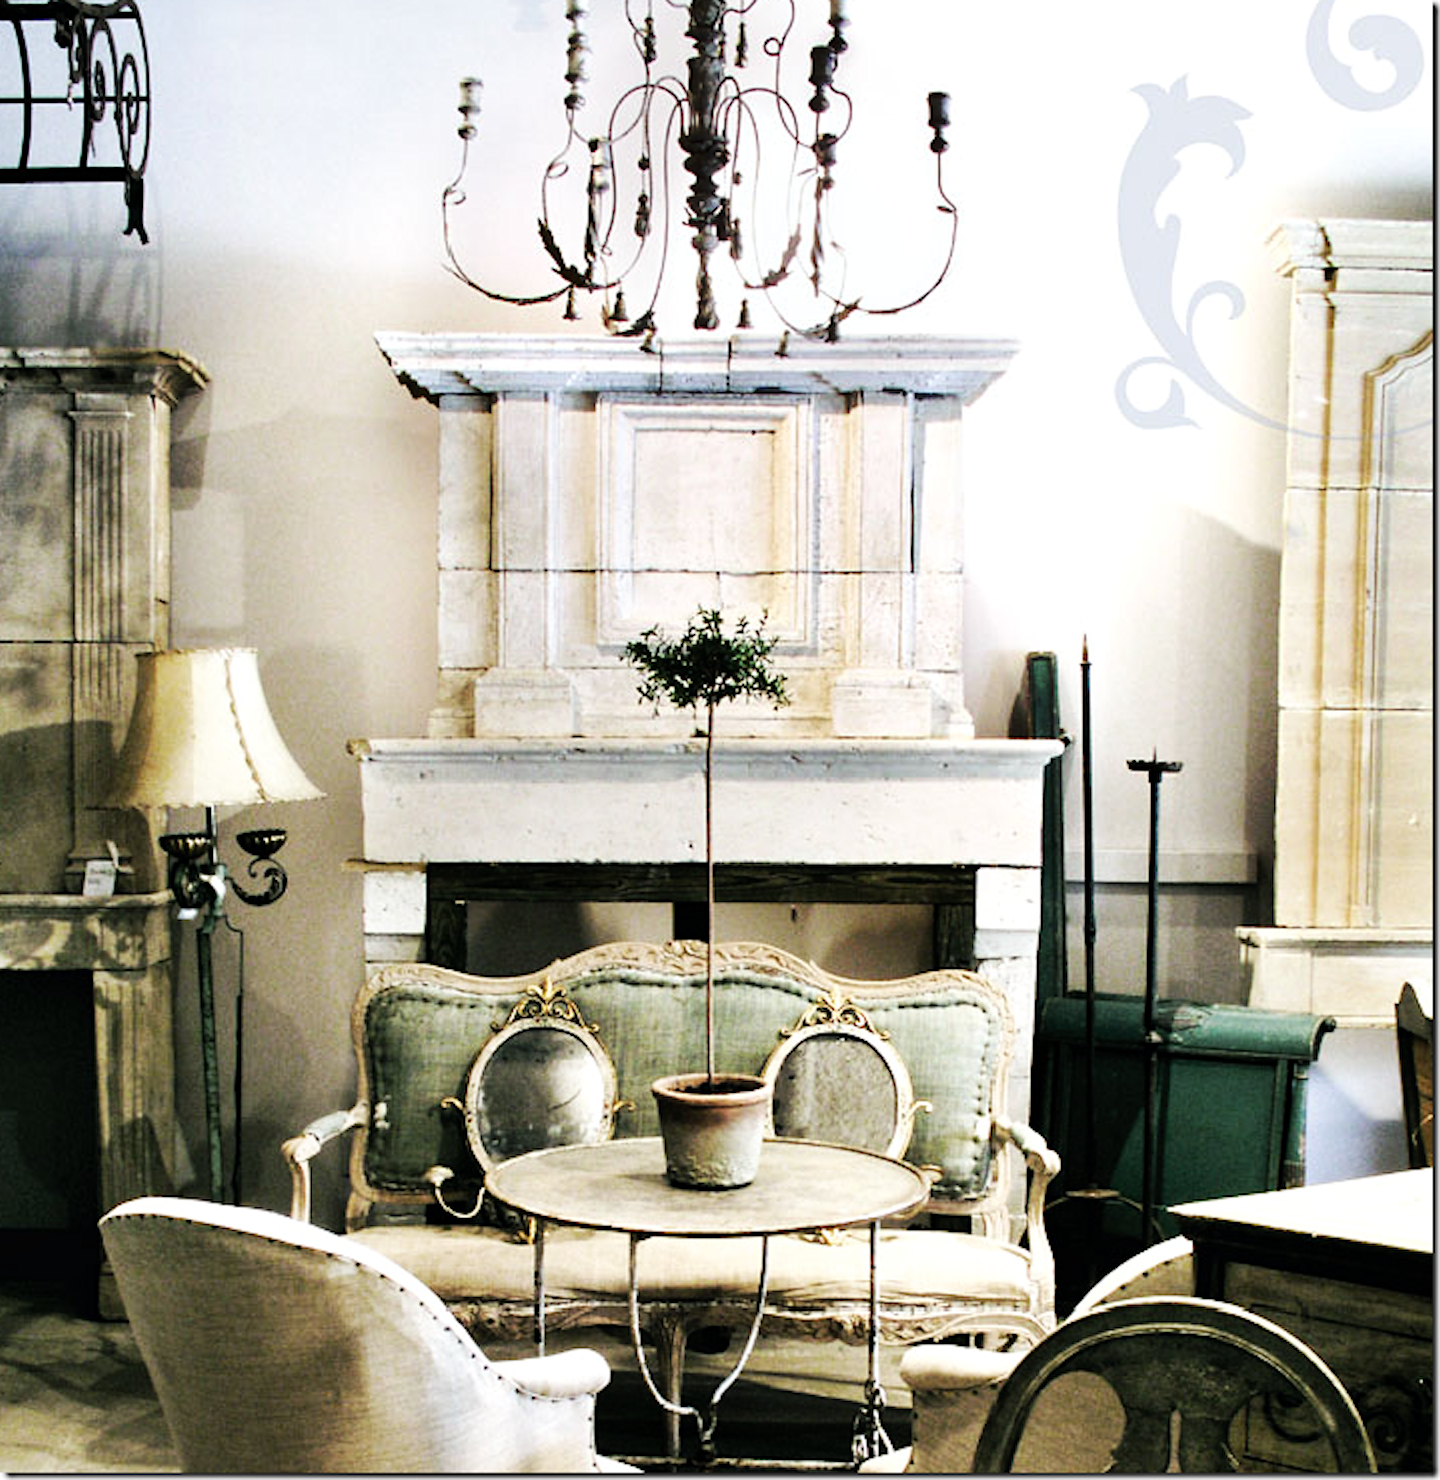 Vintage Home Decorations: Simple Everyday Glamour: Monday Inspiration